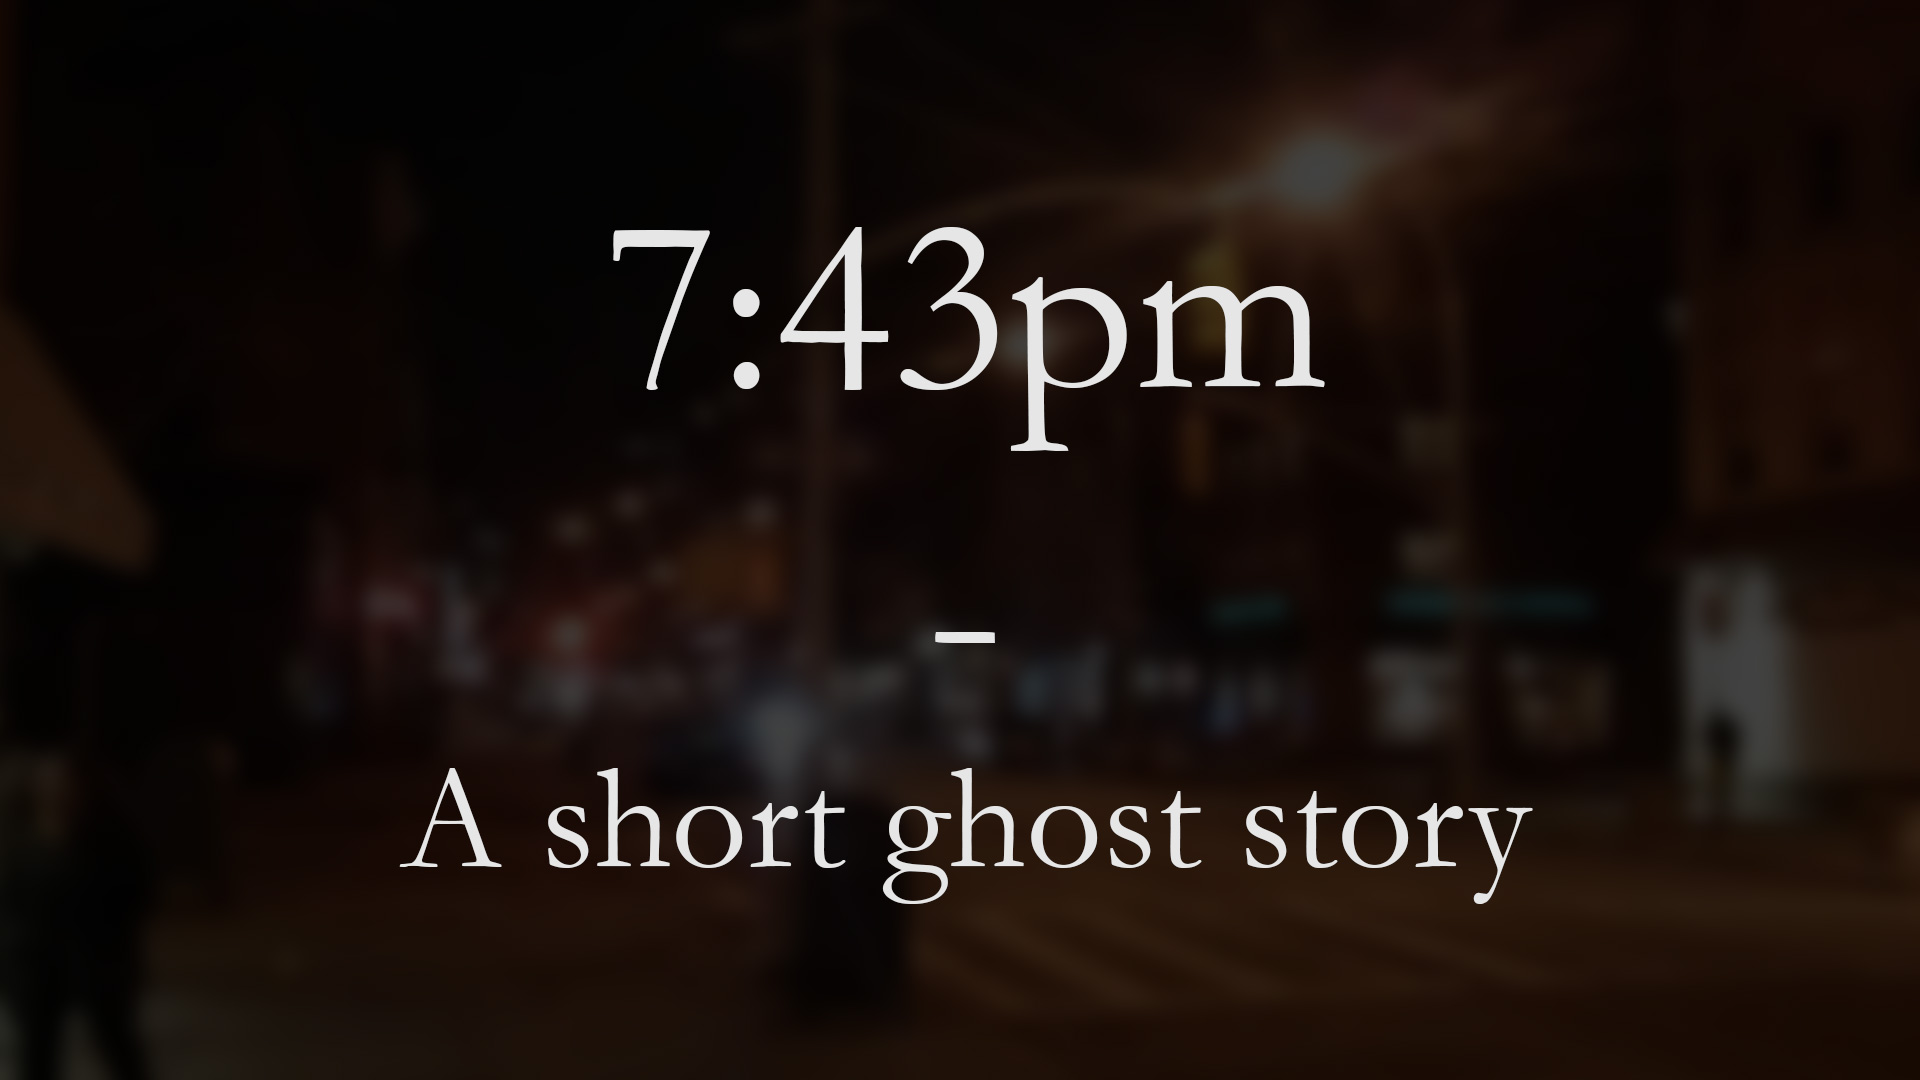 7:43pm – A short ghost story